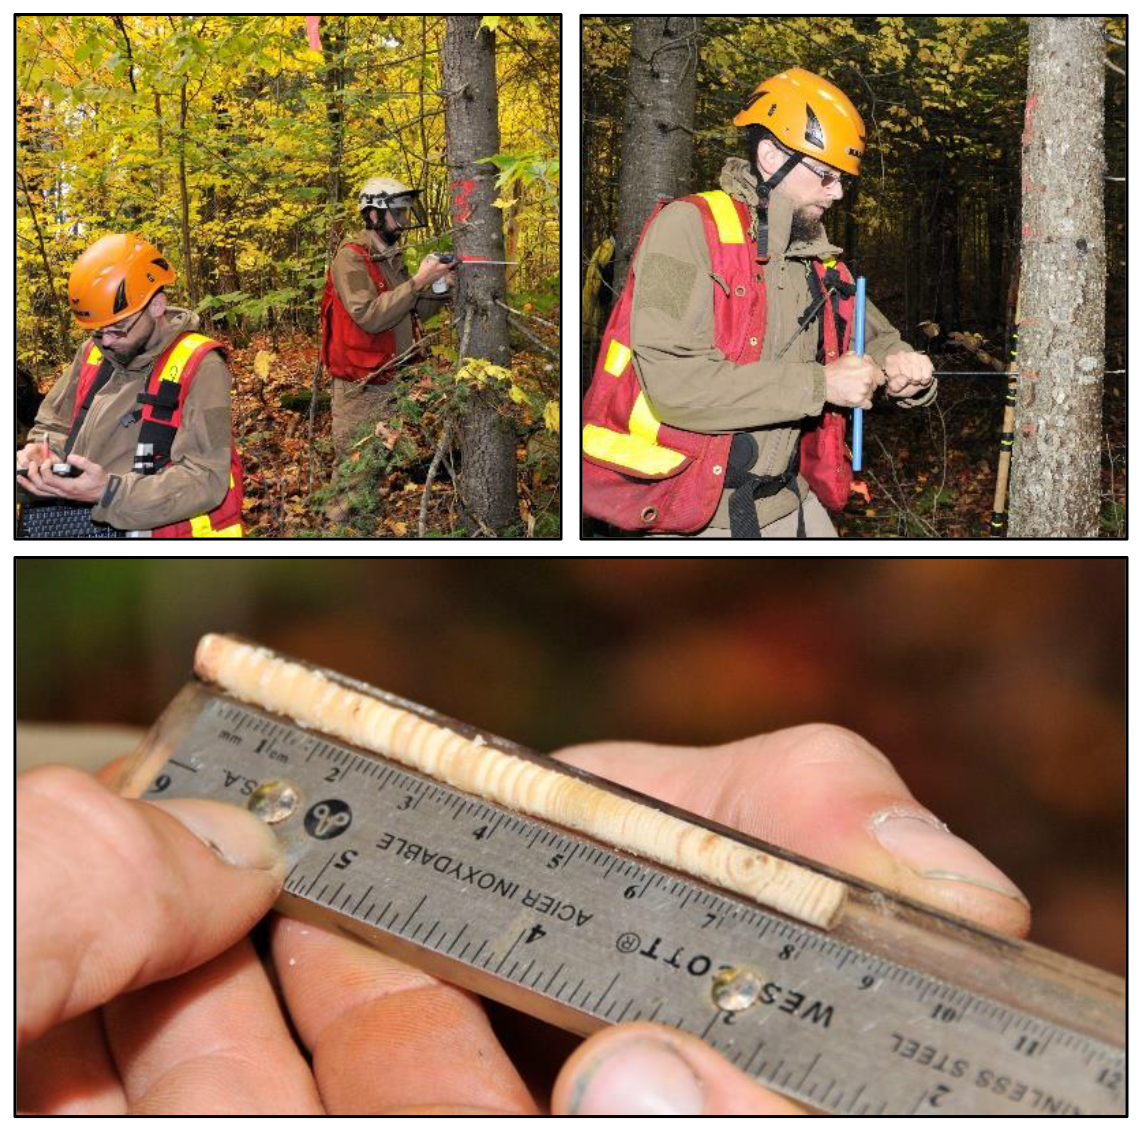 Scientists in hard hats measure trees.